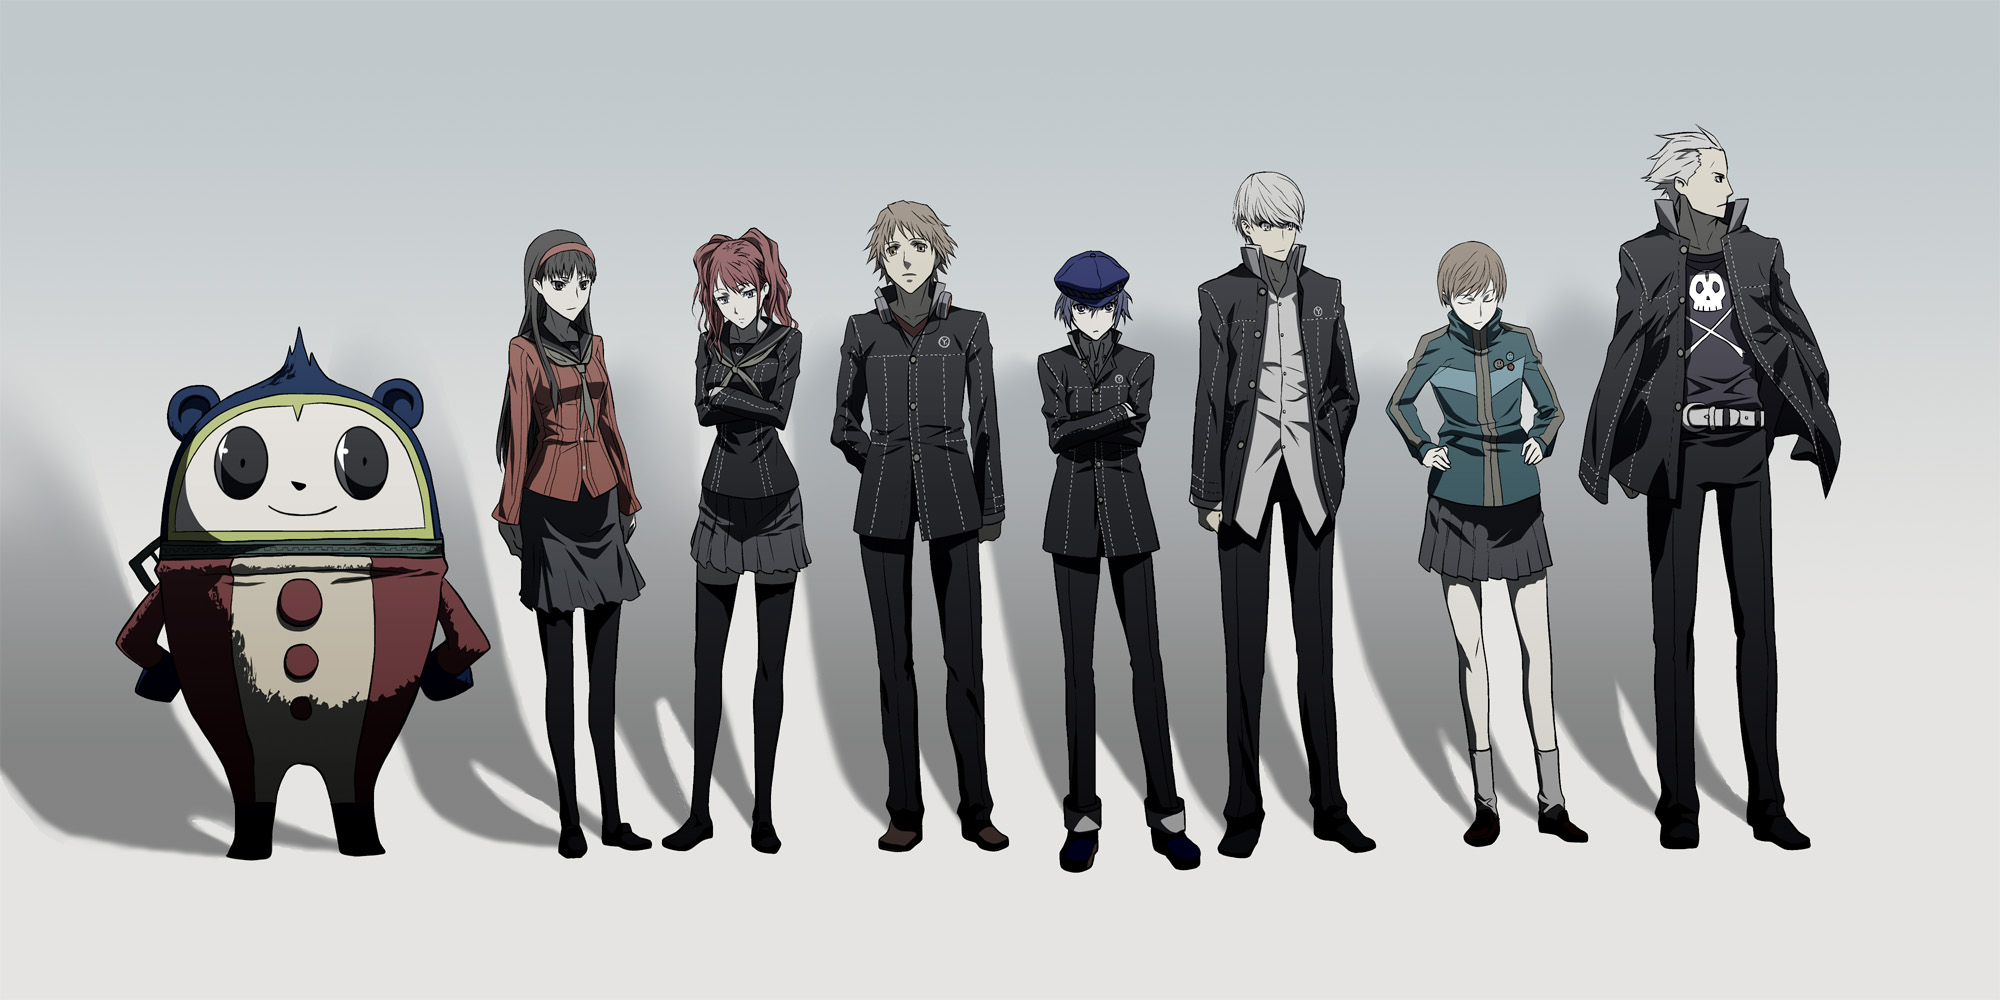 2000x1000 > Persona 4 Wallpapers